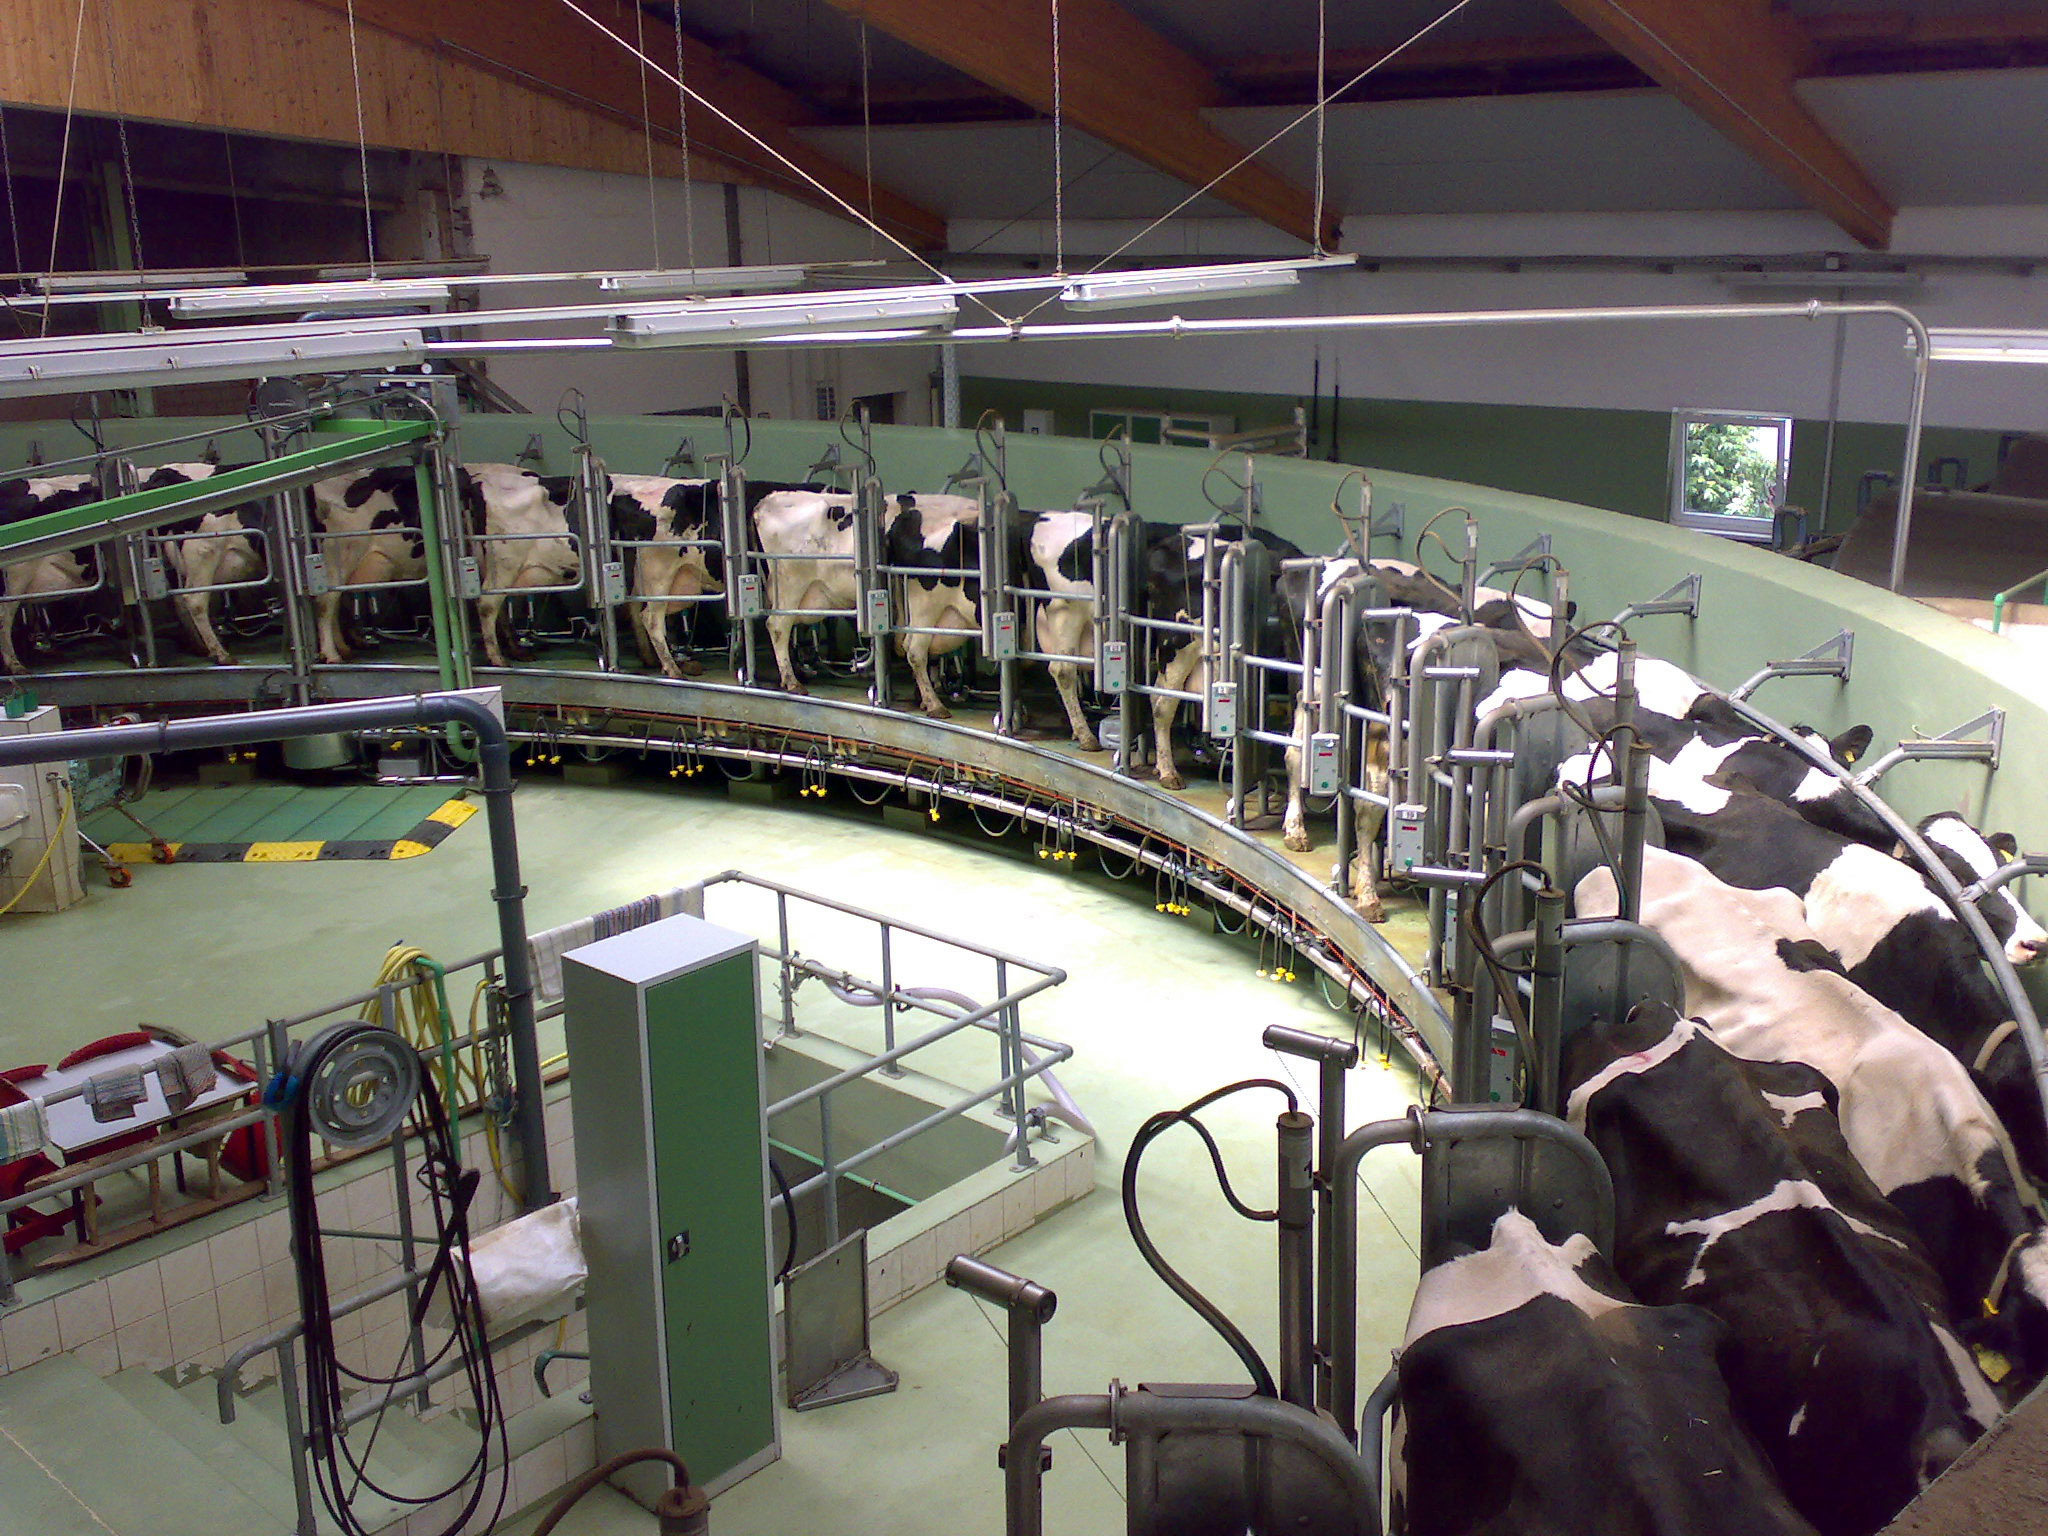 A Rotary Milking Parlor At Modern Dairy Facility Located In Germany